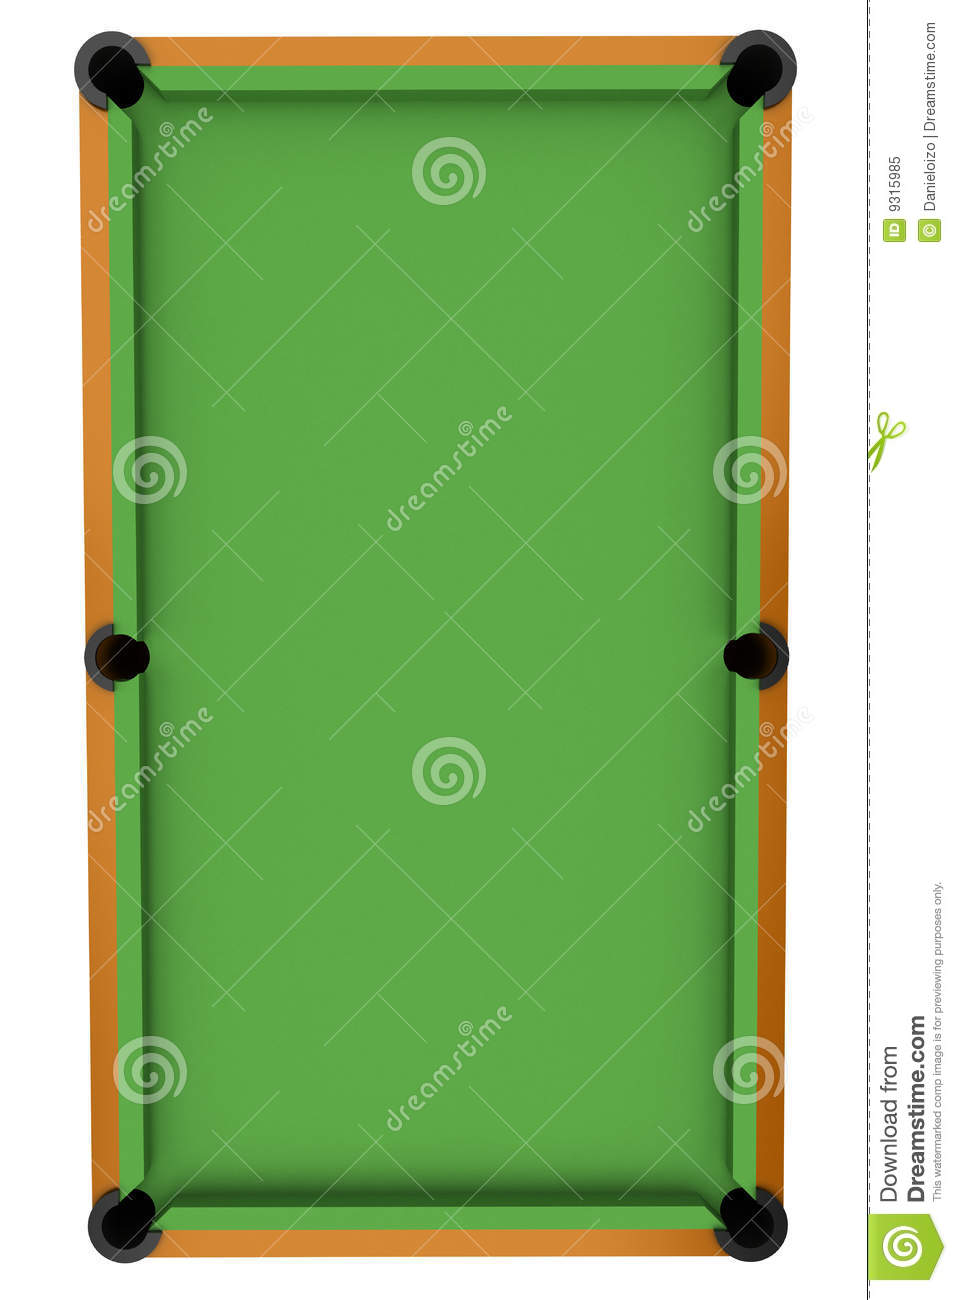 Table De Billard De Billard Illustration Stock